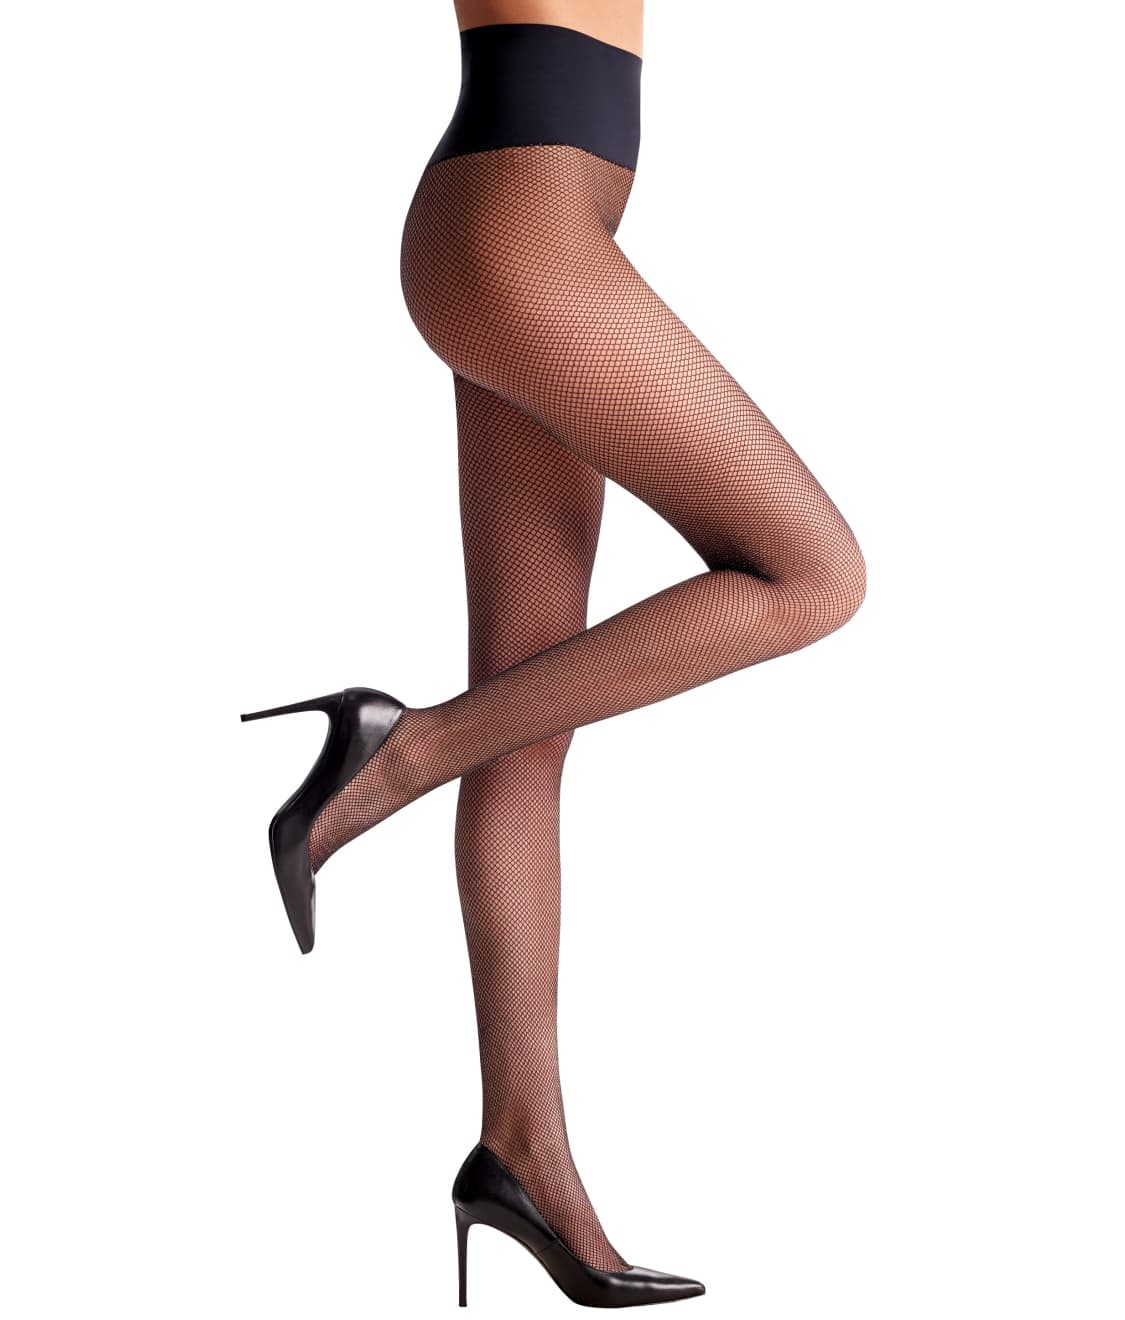 Anlaey High Waist Fishnet Tights Plus Size Fishnet Stockings Leggings Fish  Nets Stockings Fishnets for Women Tights & Hosiery